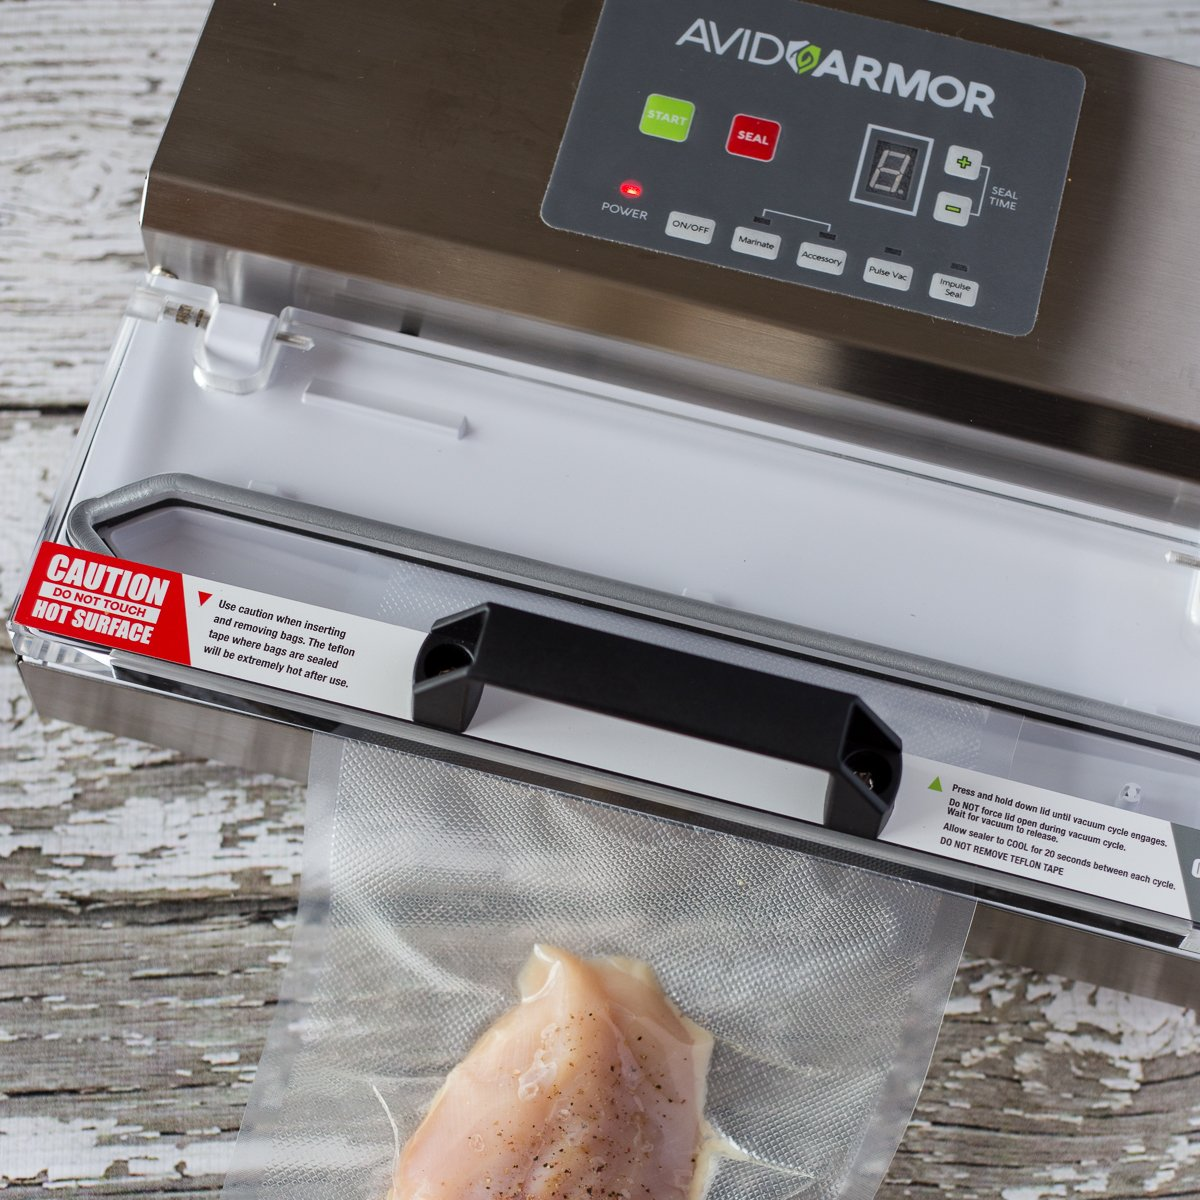 Avid Armor Vacuum Sealer Machine - A100 Stainless Construction, Clear Lid, Commercial Double Piston Pump Heavy Duty 12'' Wide Seal Bar Built in Cooling Fan Includes 30 Pre-cut Bags and Accessory Hose by Avid Armor (Image #6)